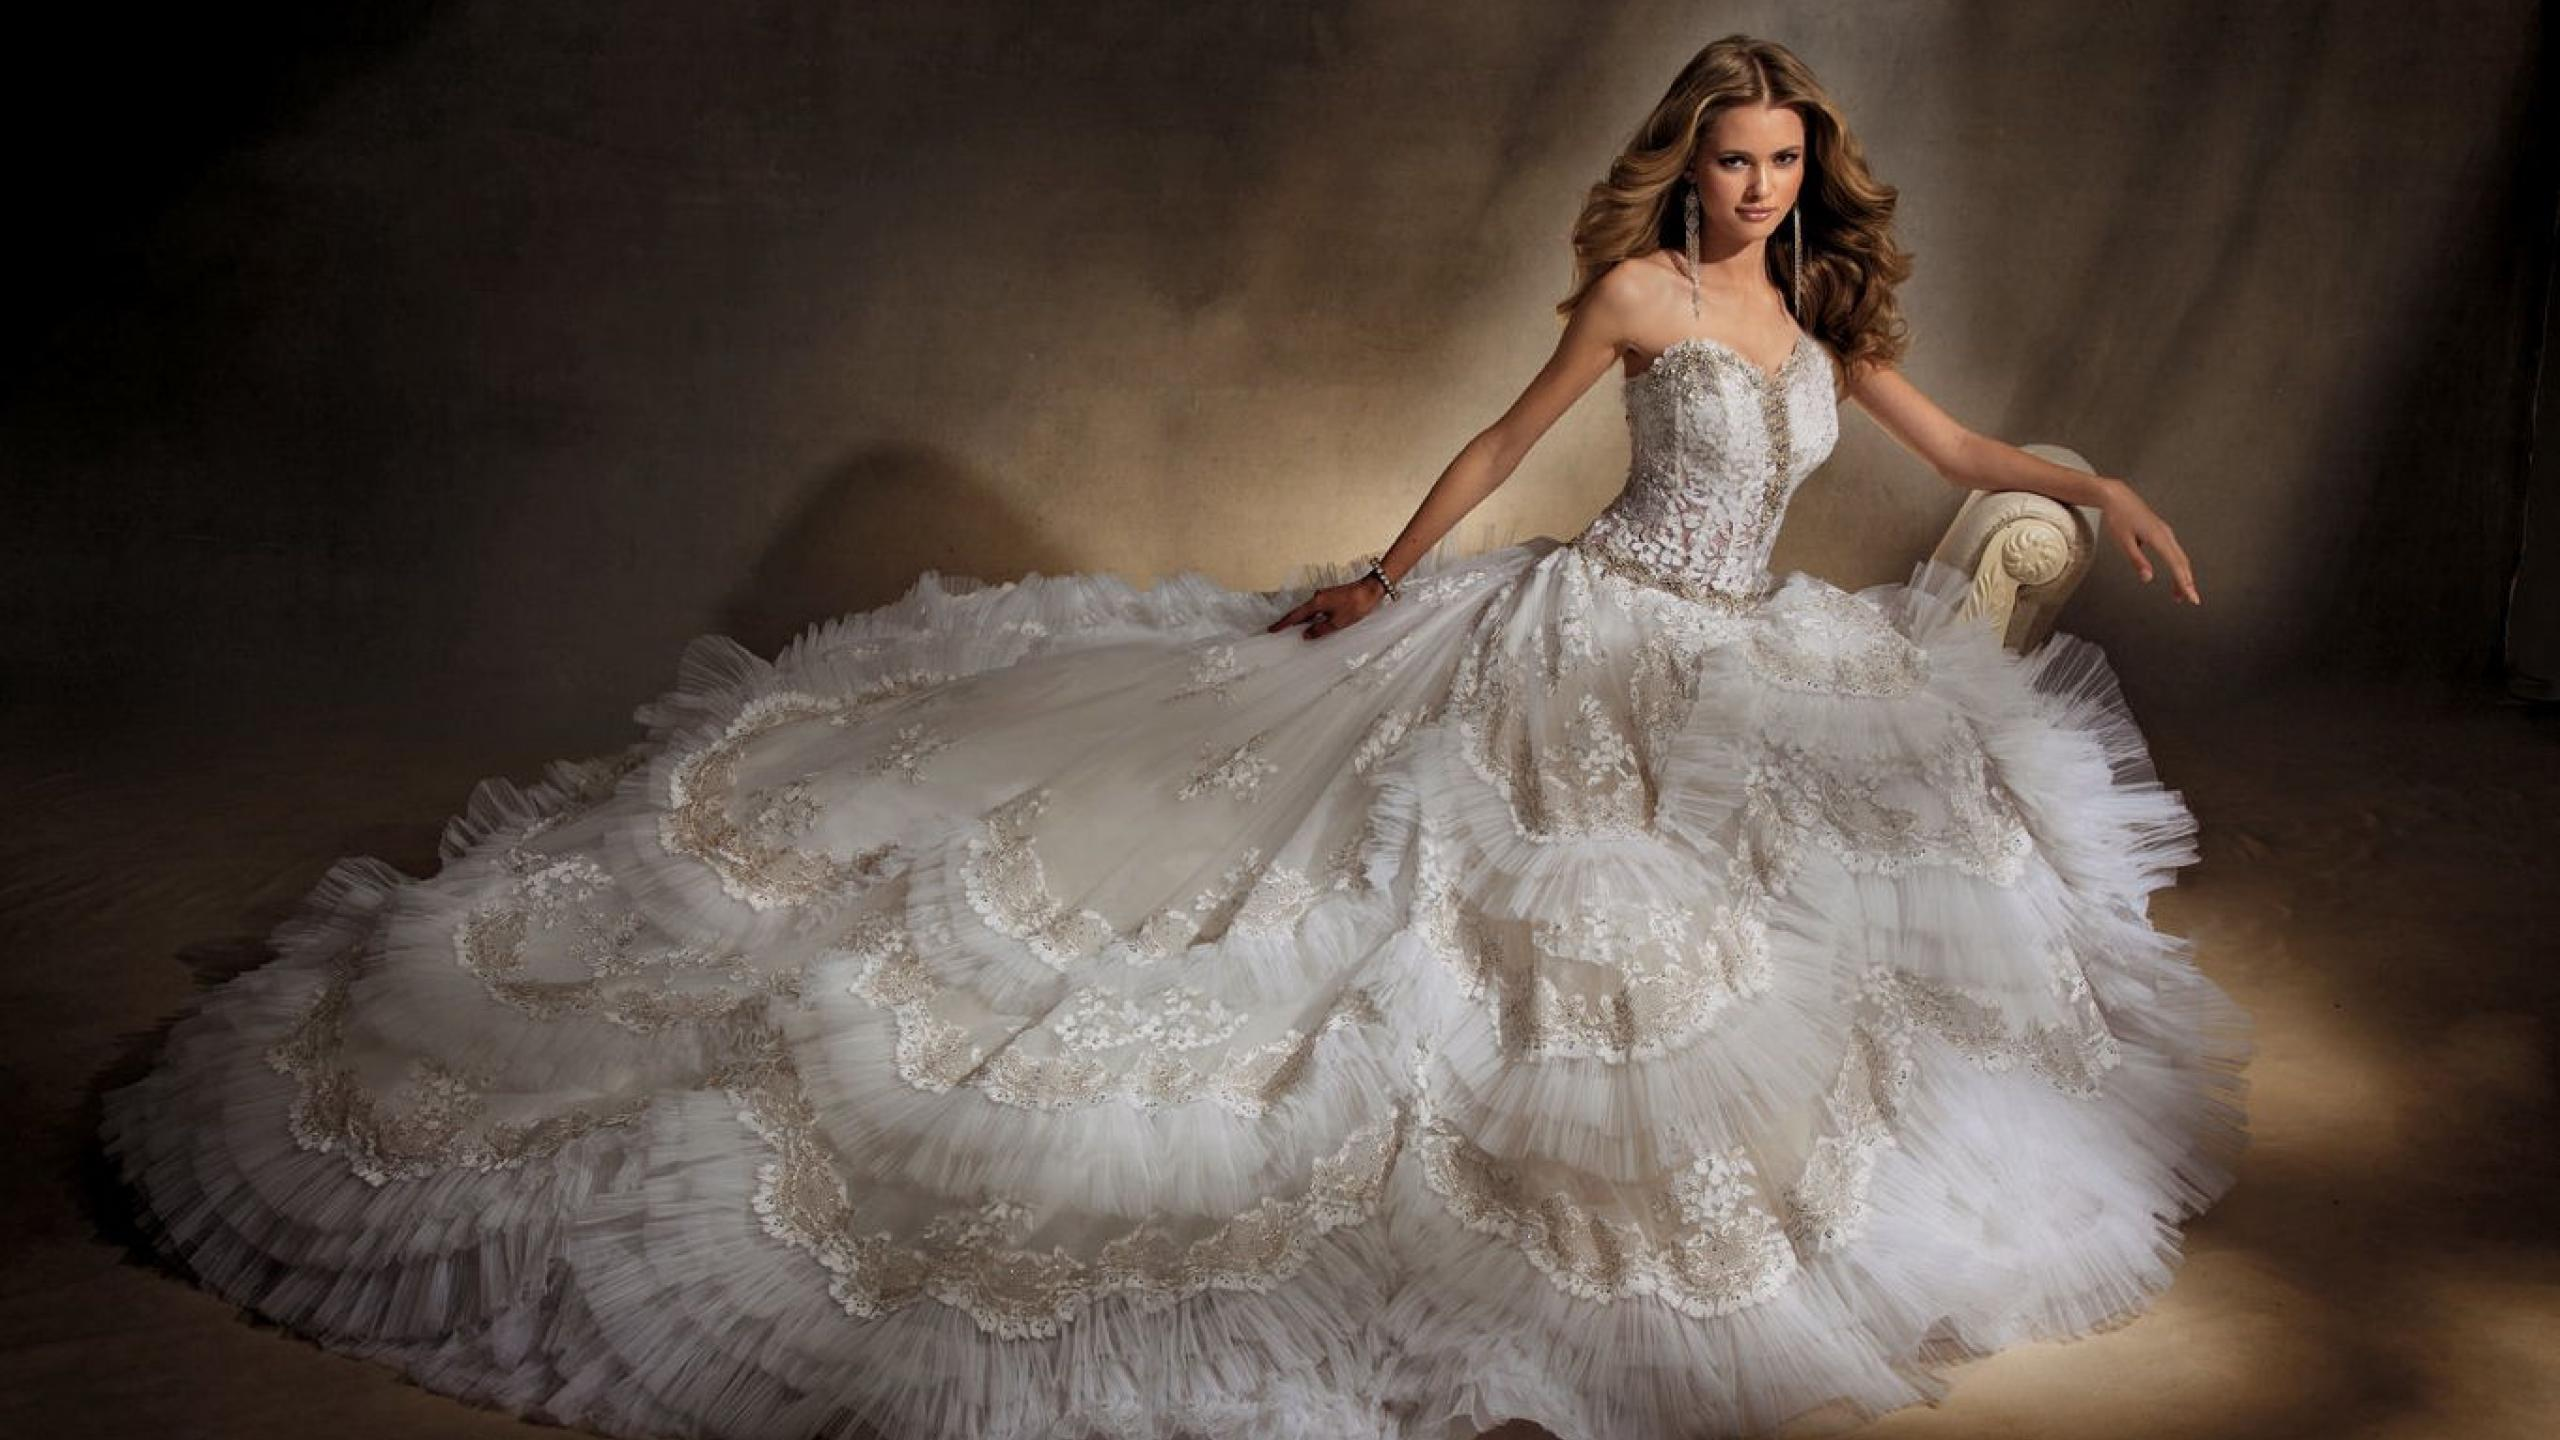 bride_photography_wedding_gown_model_lady_2560x1440_hd-wallpaper-1745109